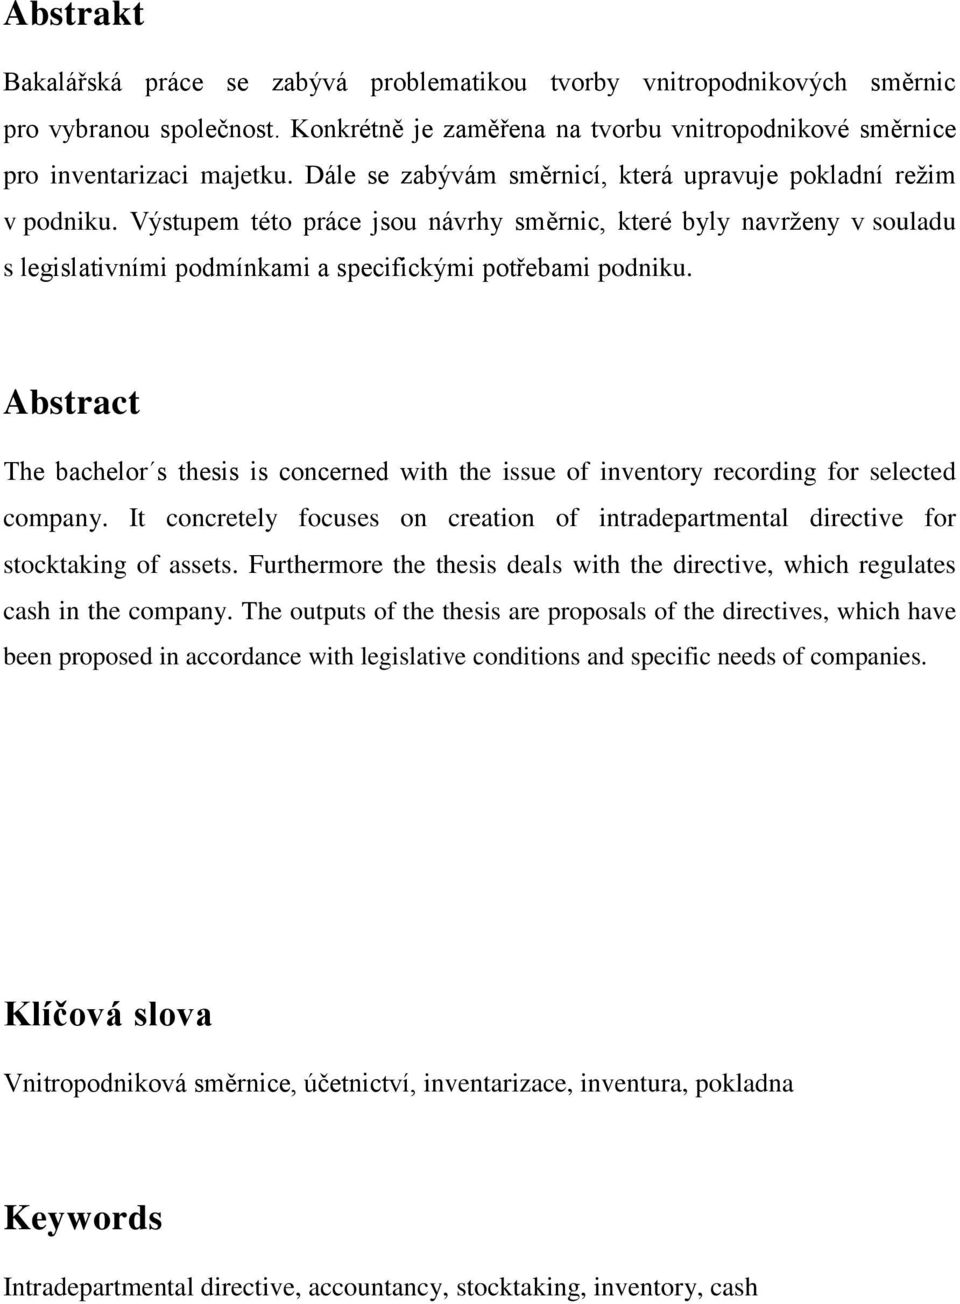 Abstract The bachelor s thesis is concerned with the issue of inventory recording for selected company. It concretely focuses on creation of intradepartmental directive for stocktaking of assets.